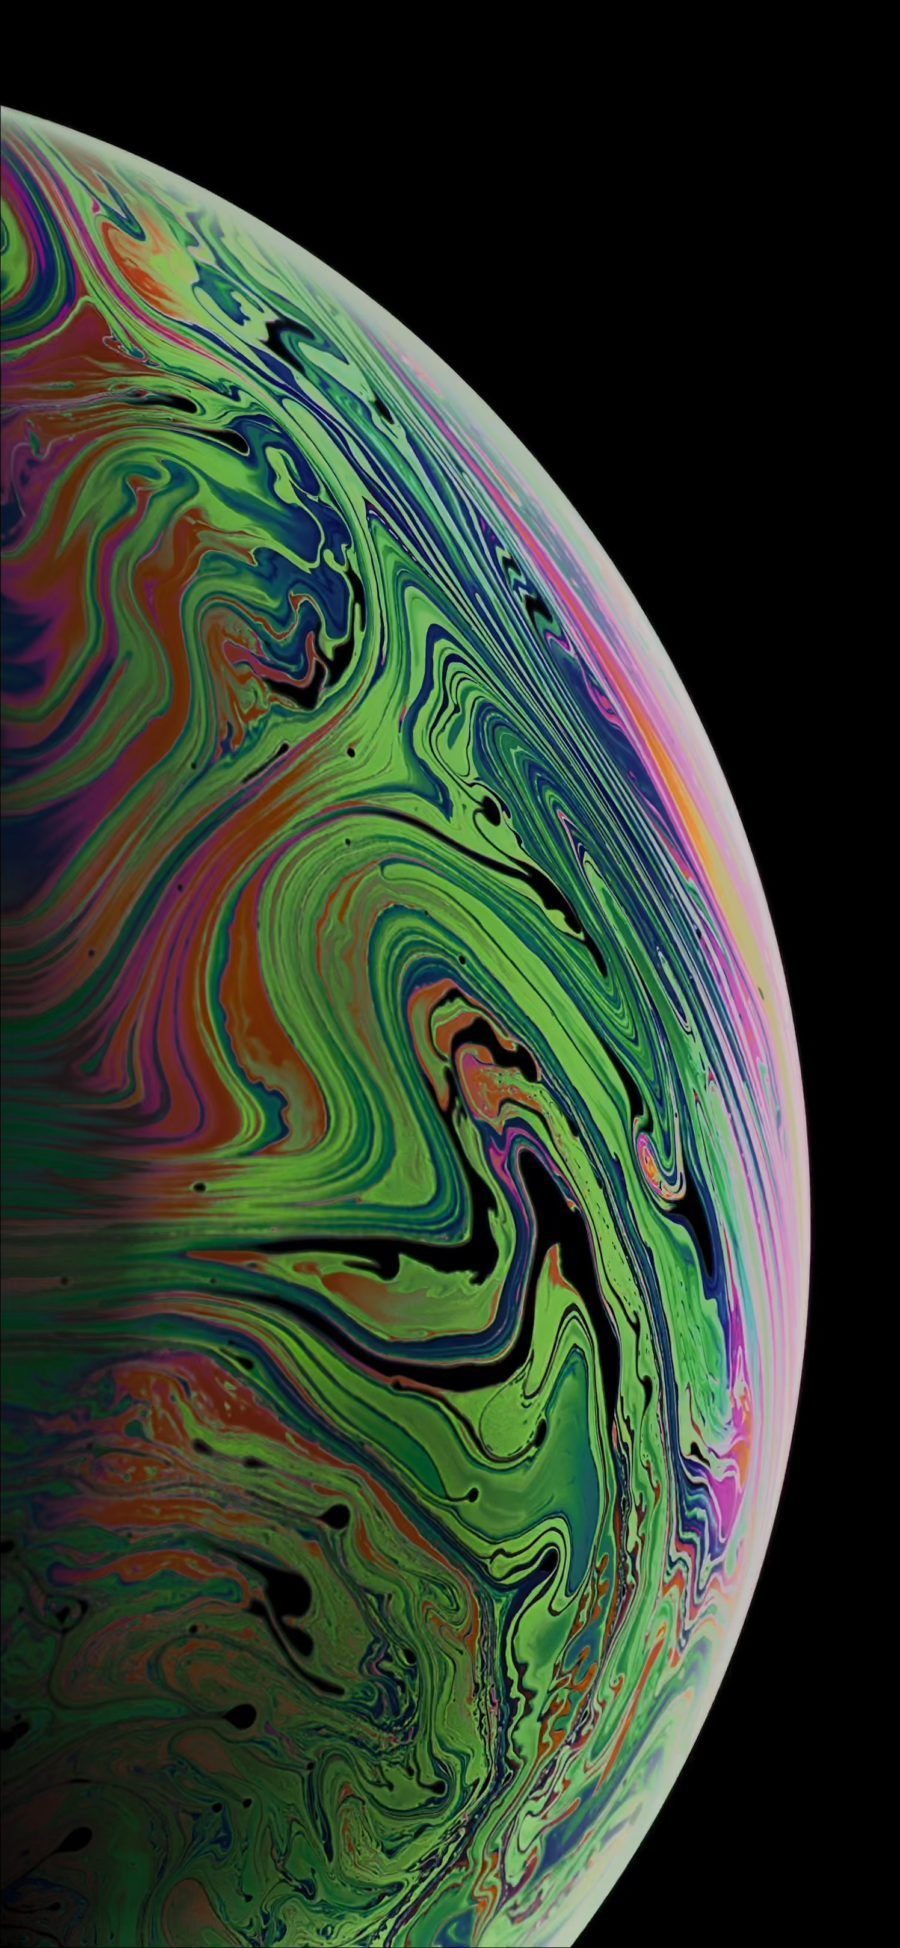 Download the 3 iPhone XS Max Wallpapers of Bubbles